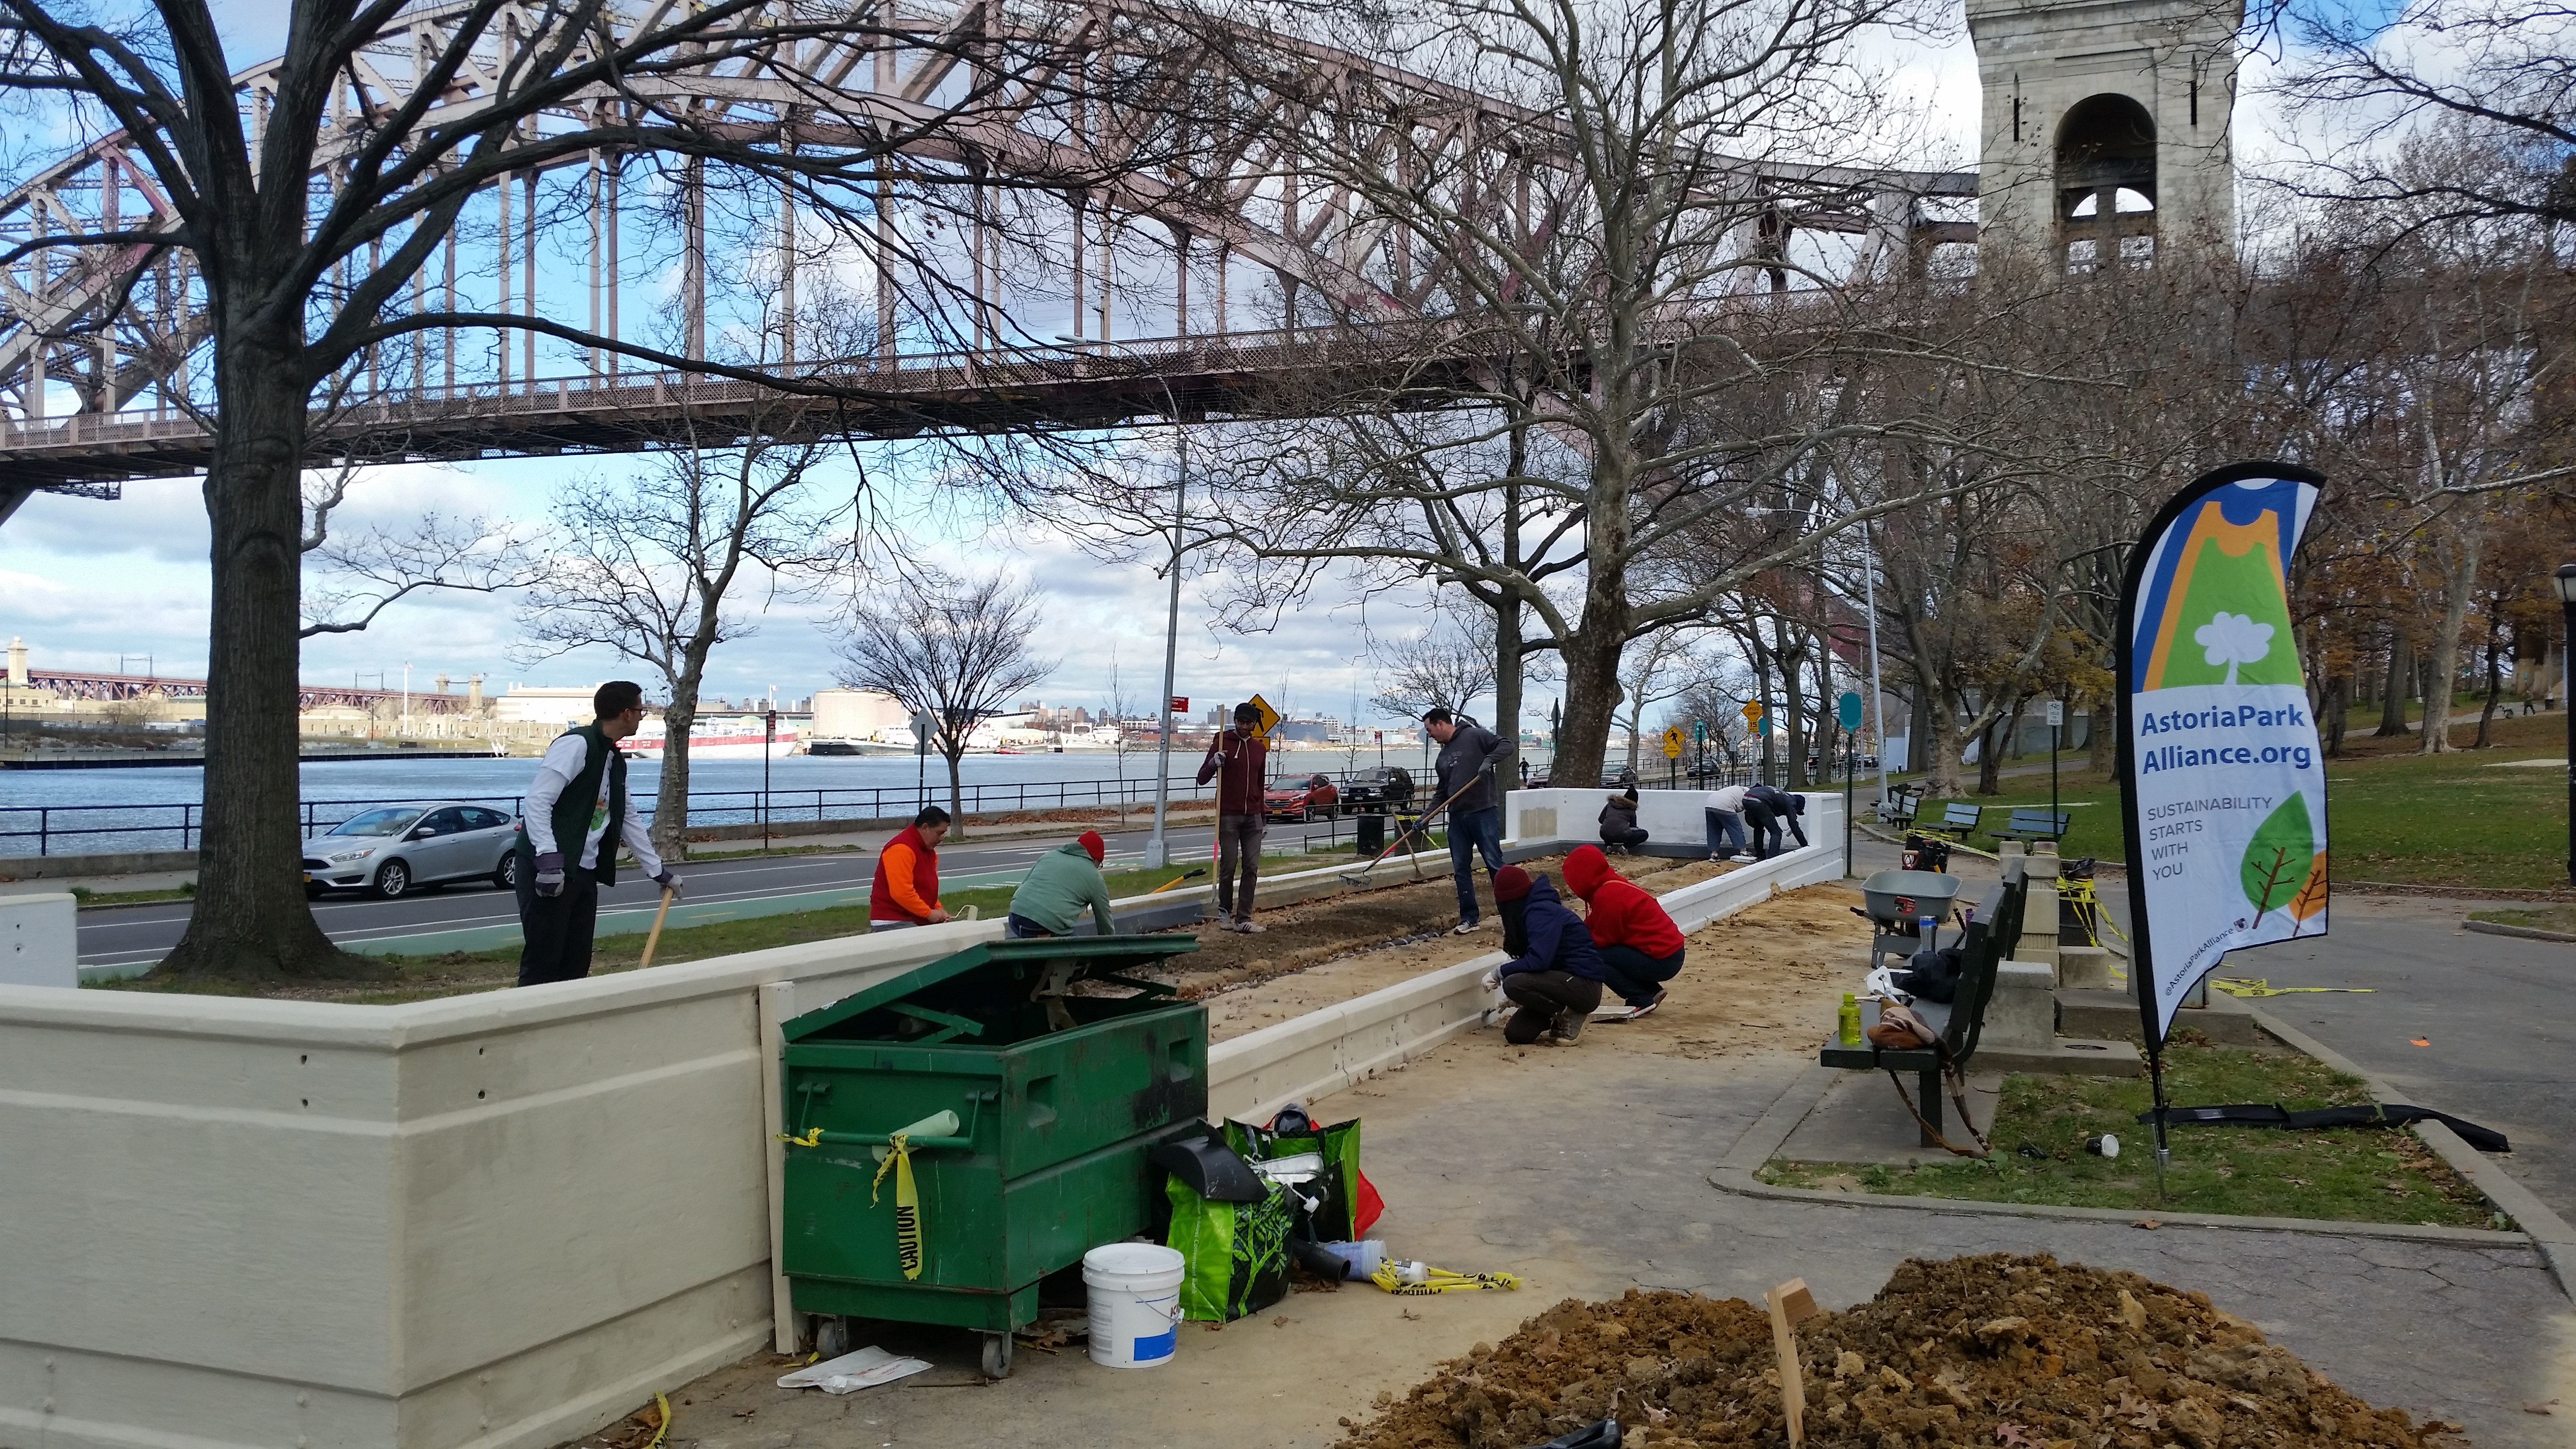 Celebrate Earth Day With The Astoria Park Alliance